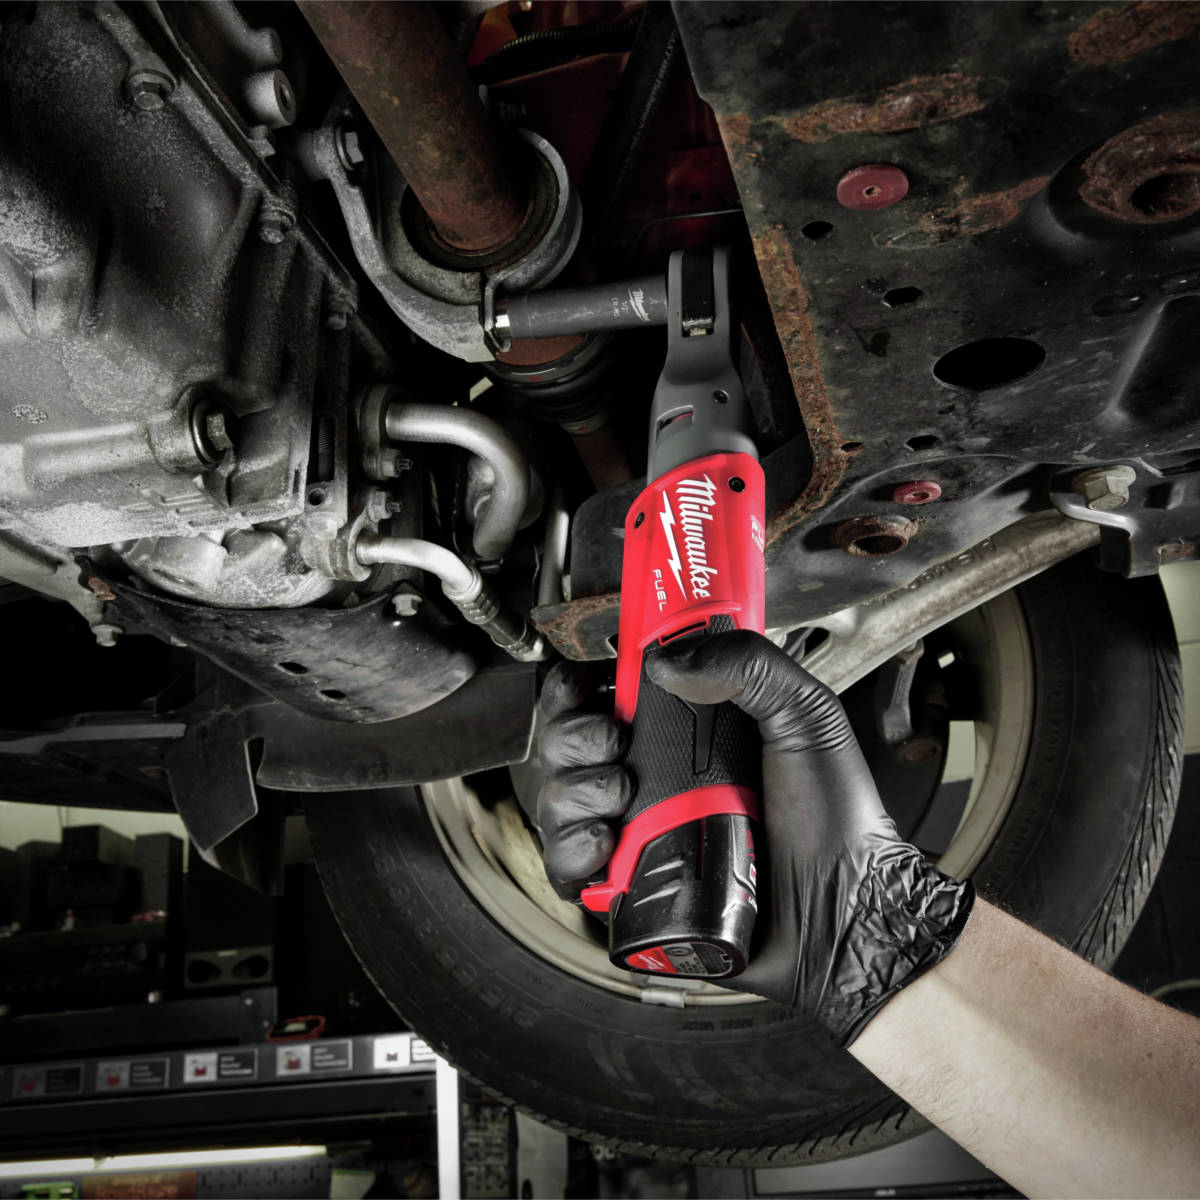 M12 FUEL 3/8 in. Ratchet provides years of reliable use